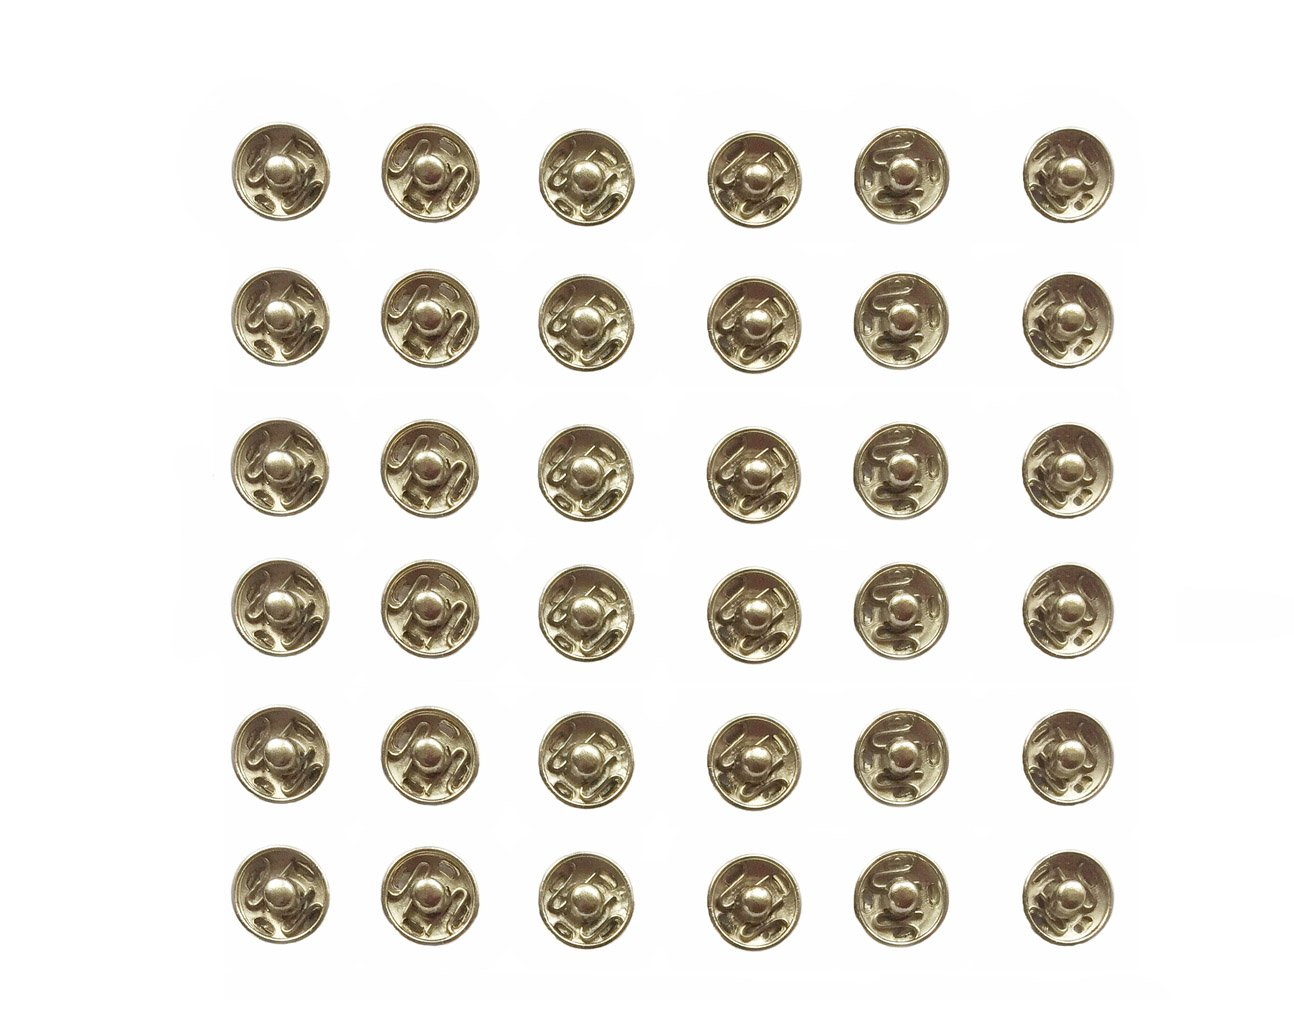 Sewing Hemline Sew On Nickel 9mm Snap Fasteners Poppers Press Studs Rust Proof Brass